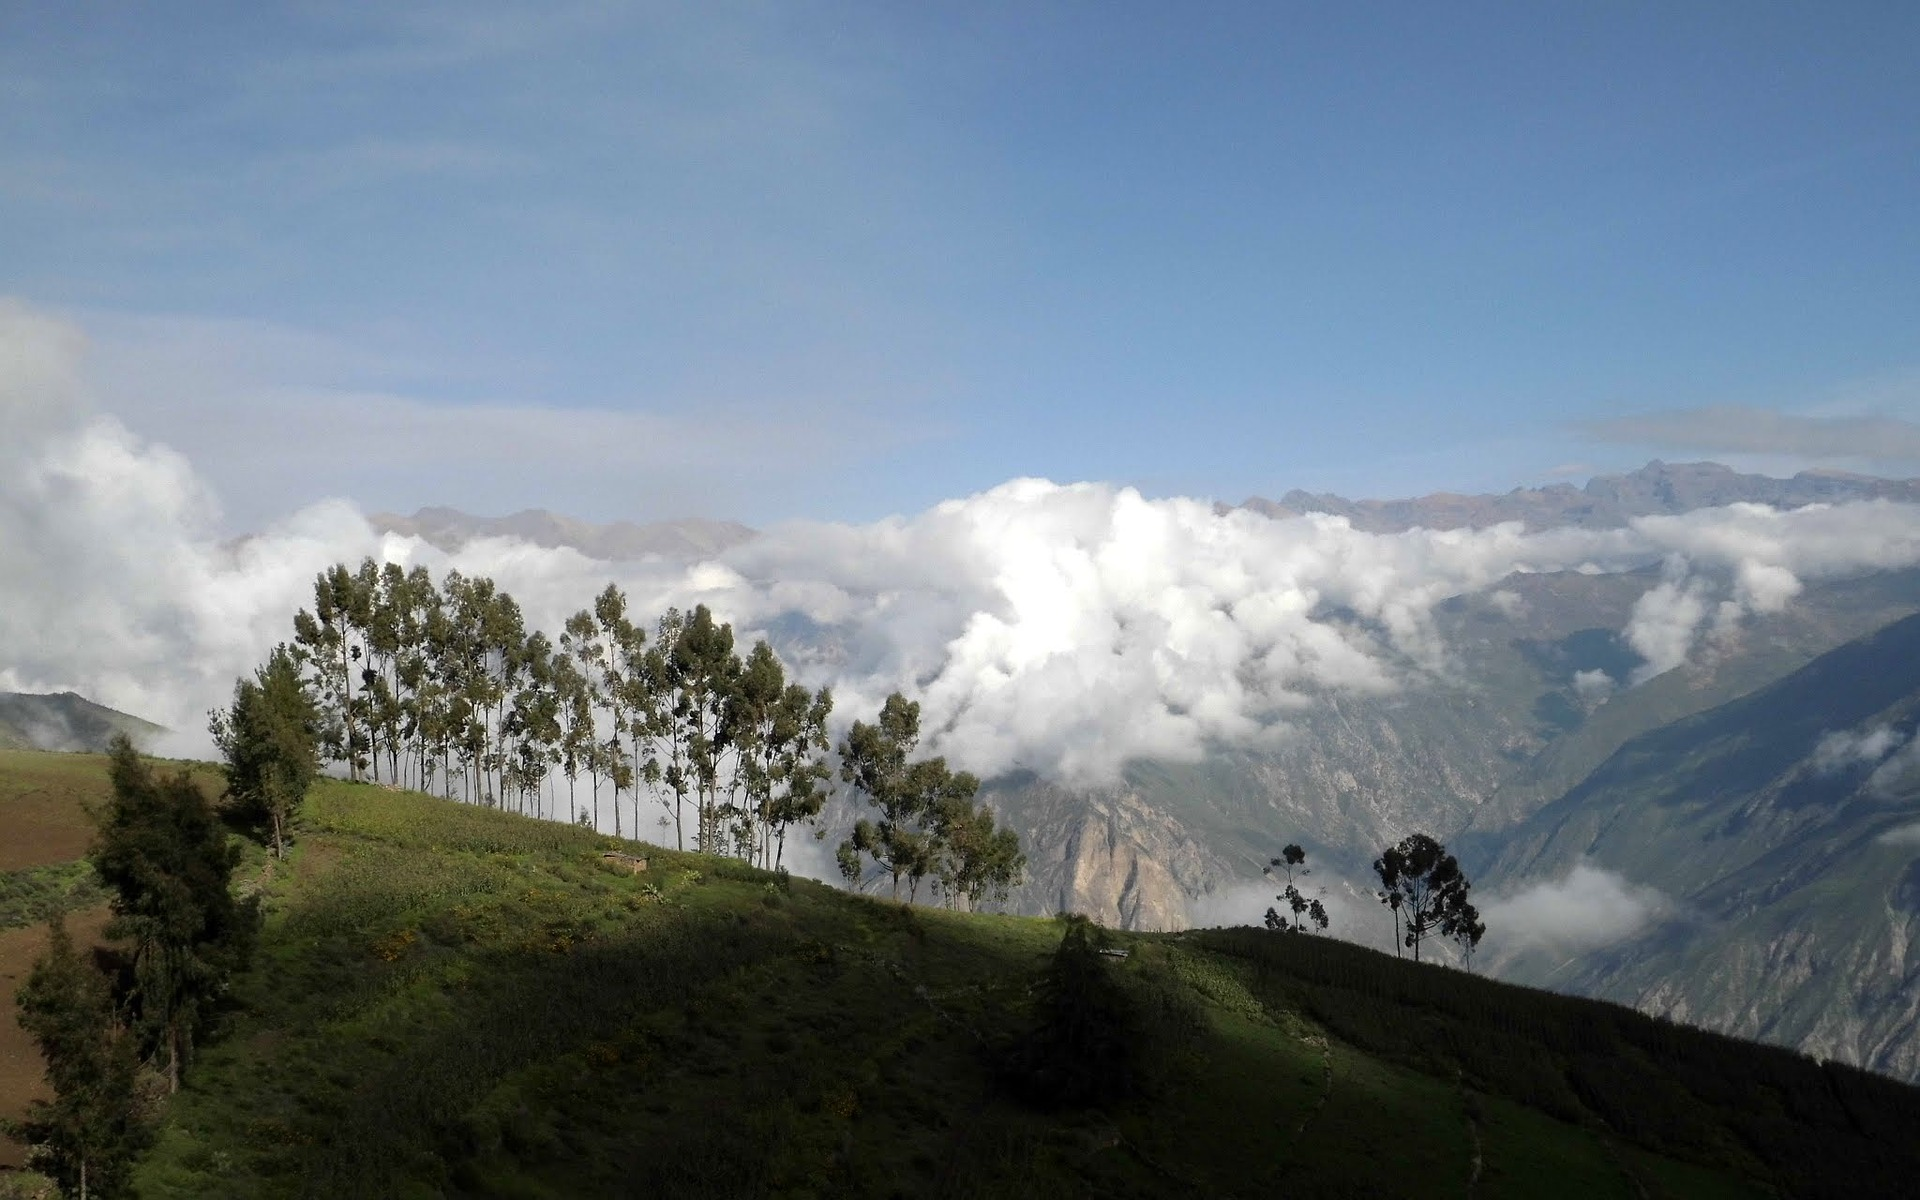 View from the rim of the Colca Canyon after climbing out of Sangalle